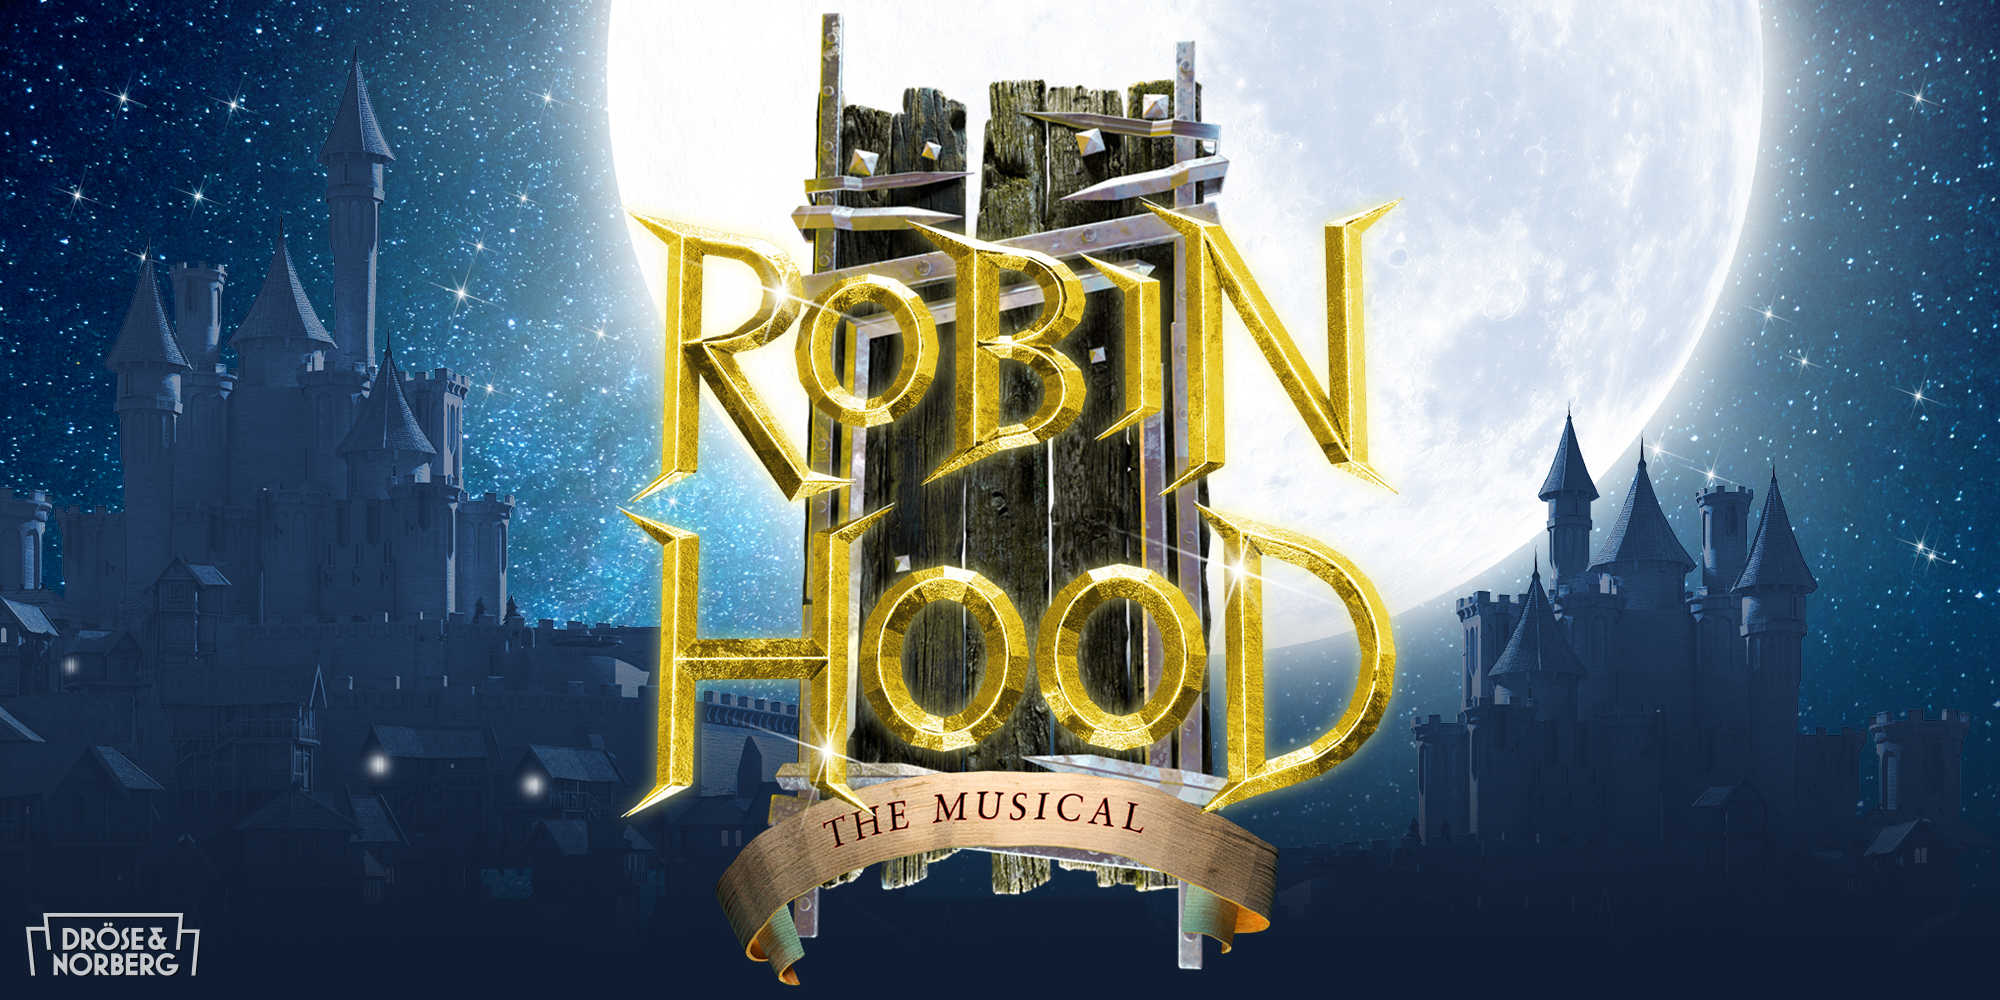 I Robin Hood -The Musical